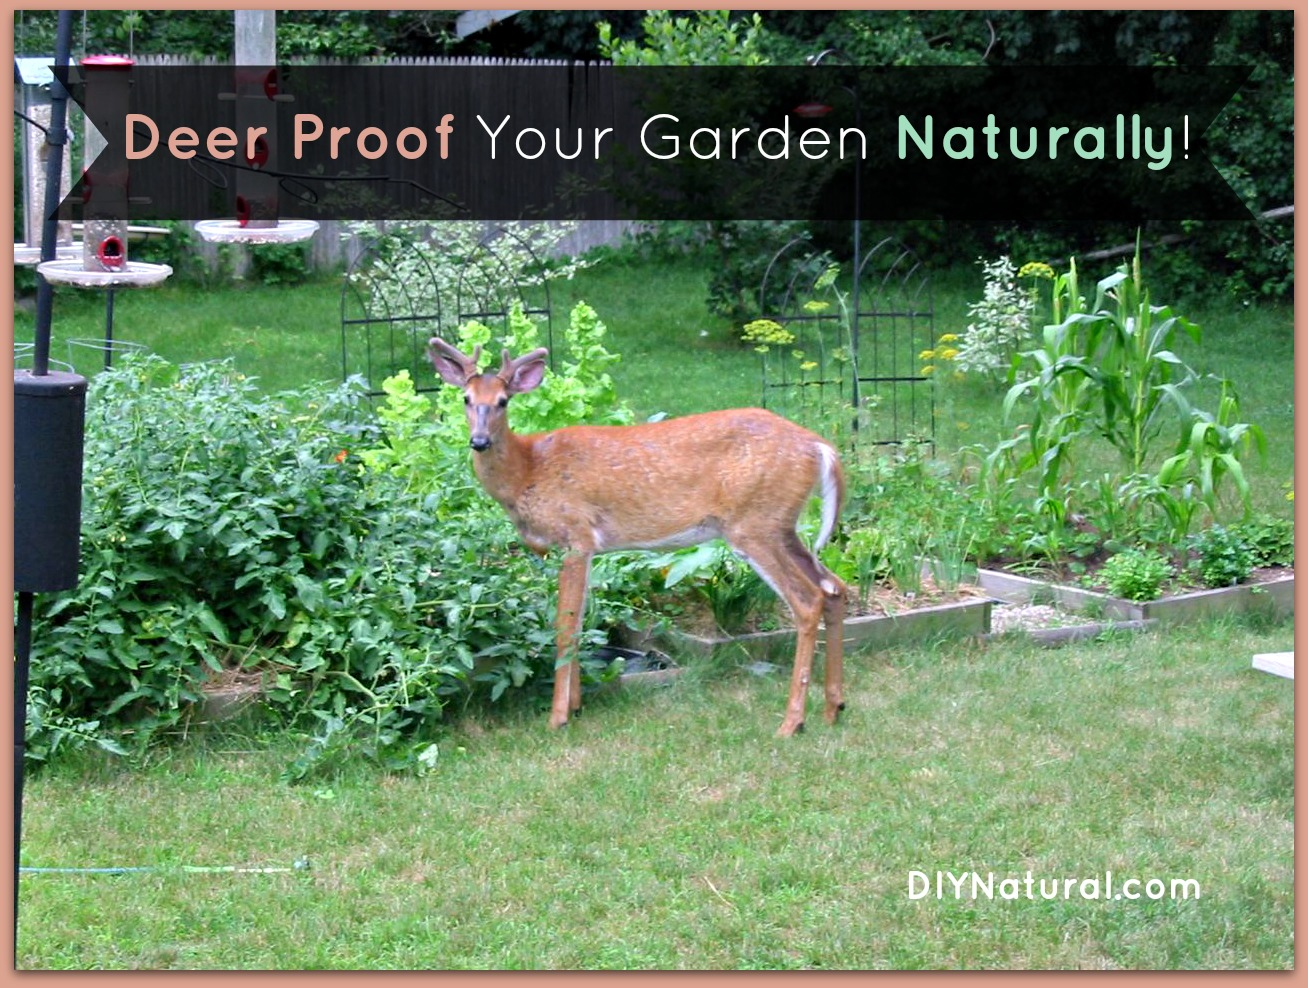 deer proof your garden and yard naturally, Garden idea